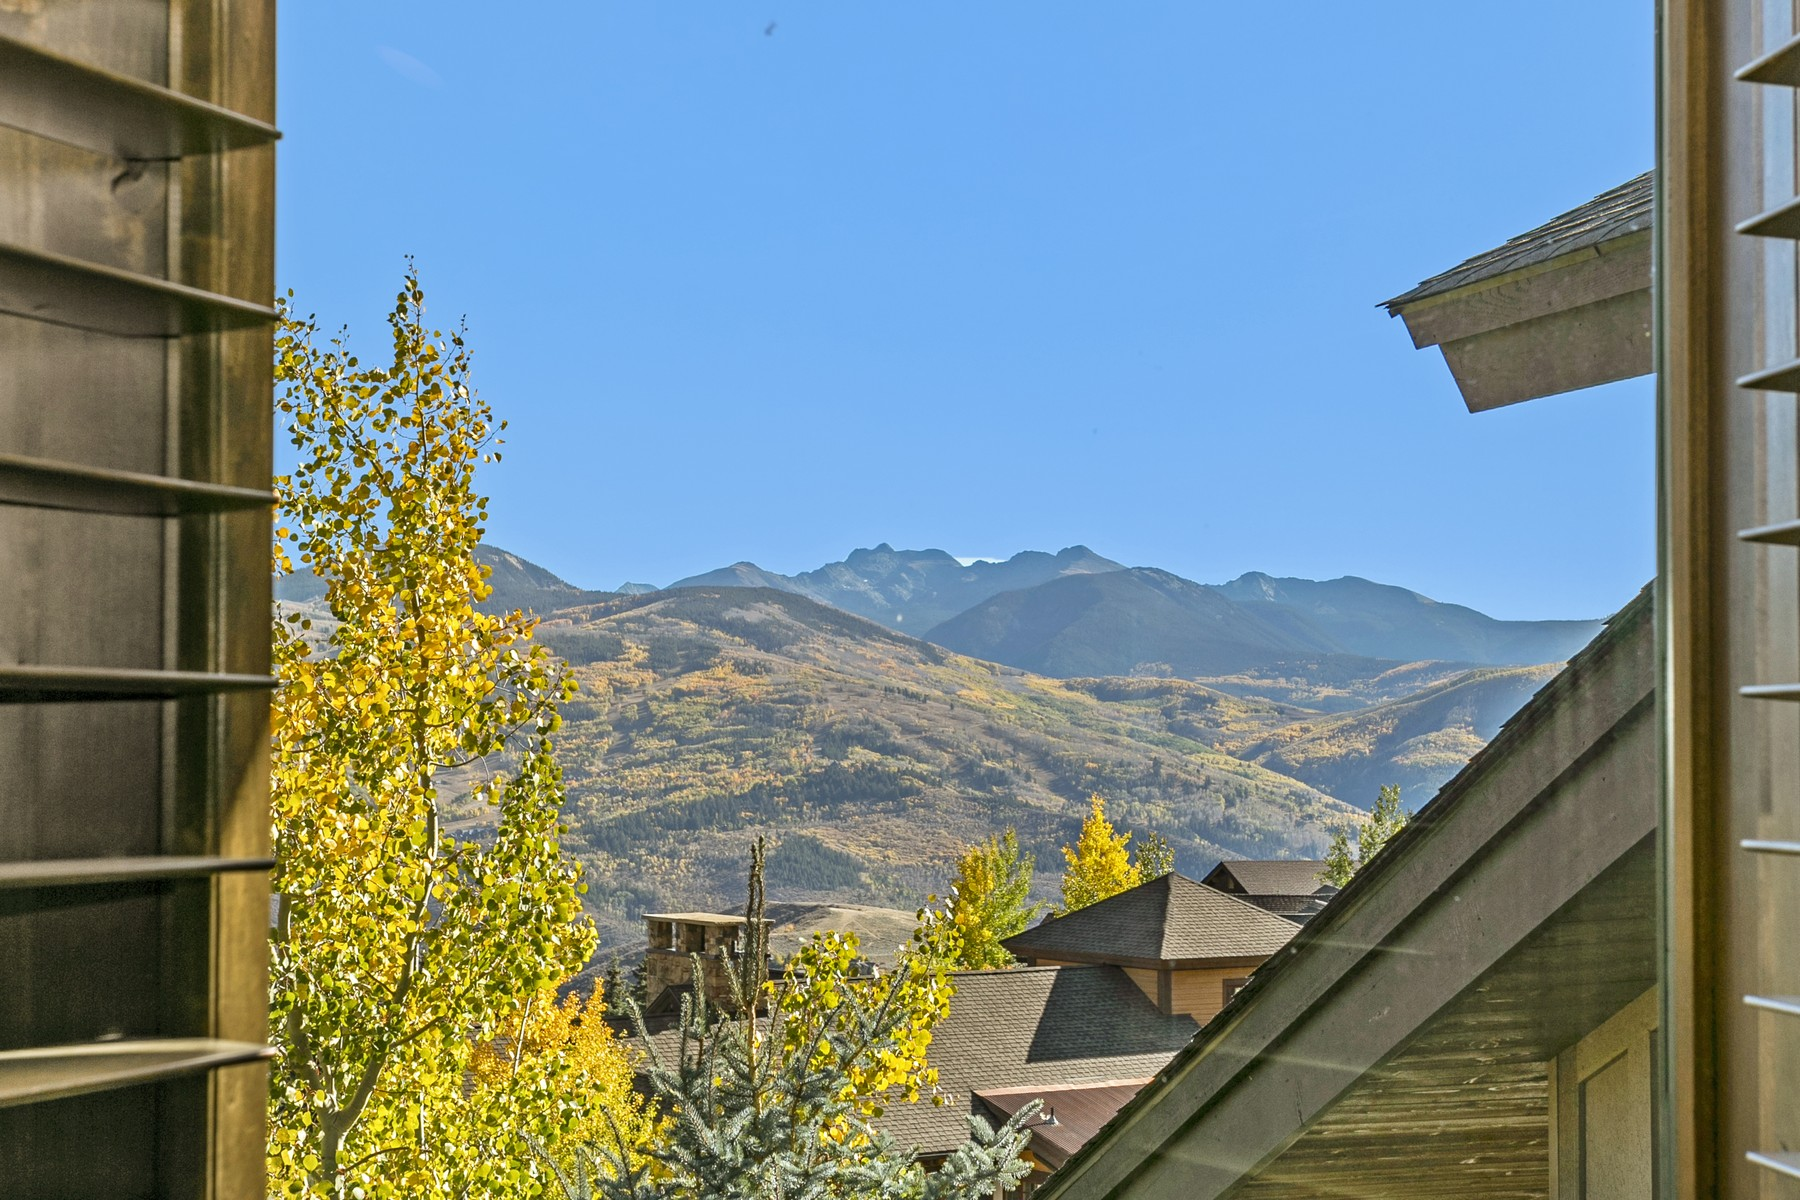 Additional photo for property listing at Incredible, private home with mountain views 5691 Wildridge Rd #E Avon, Colorado 81620 United States